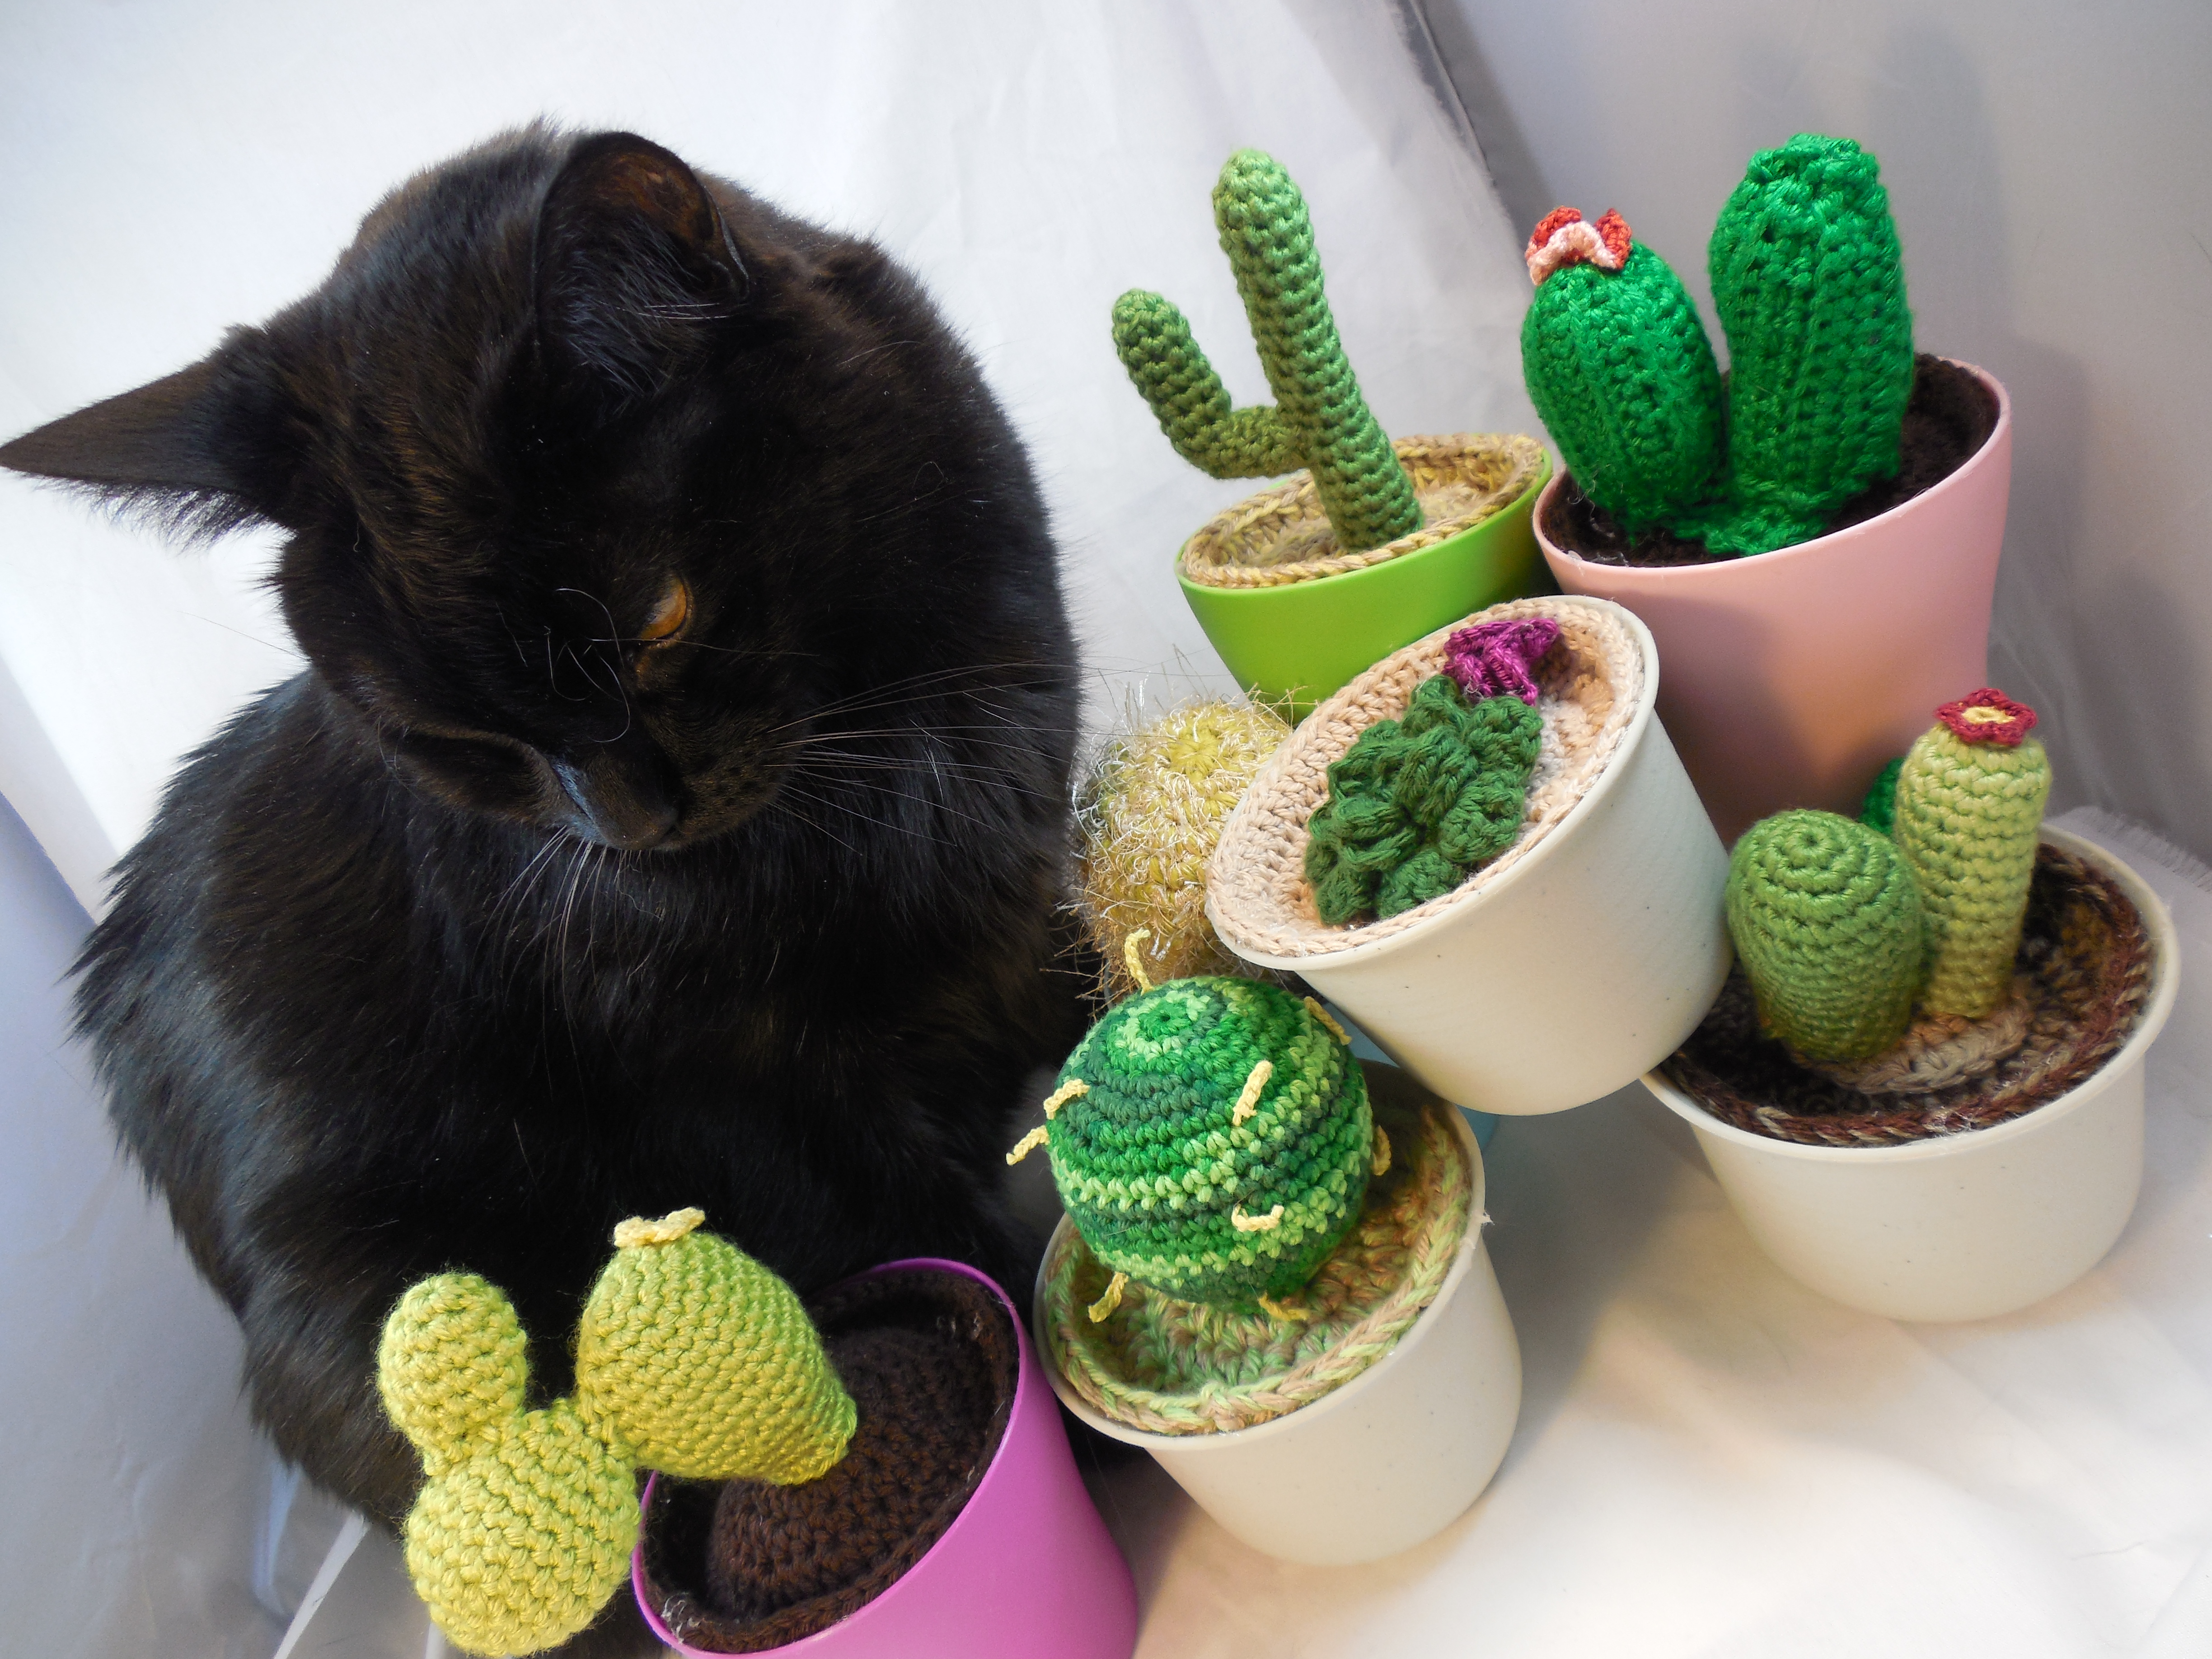 a black cat sitting between bunch of crocheted succulents